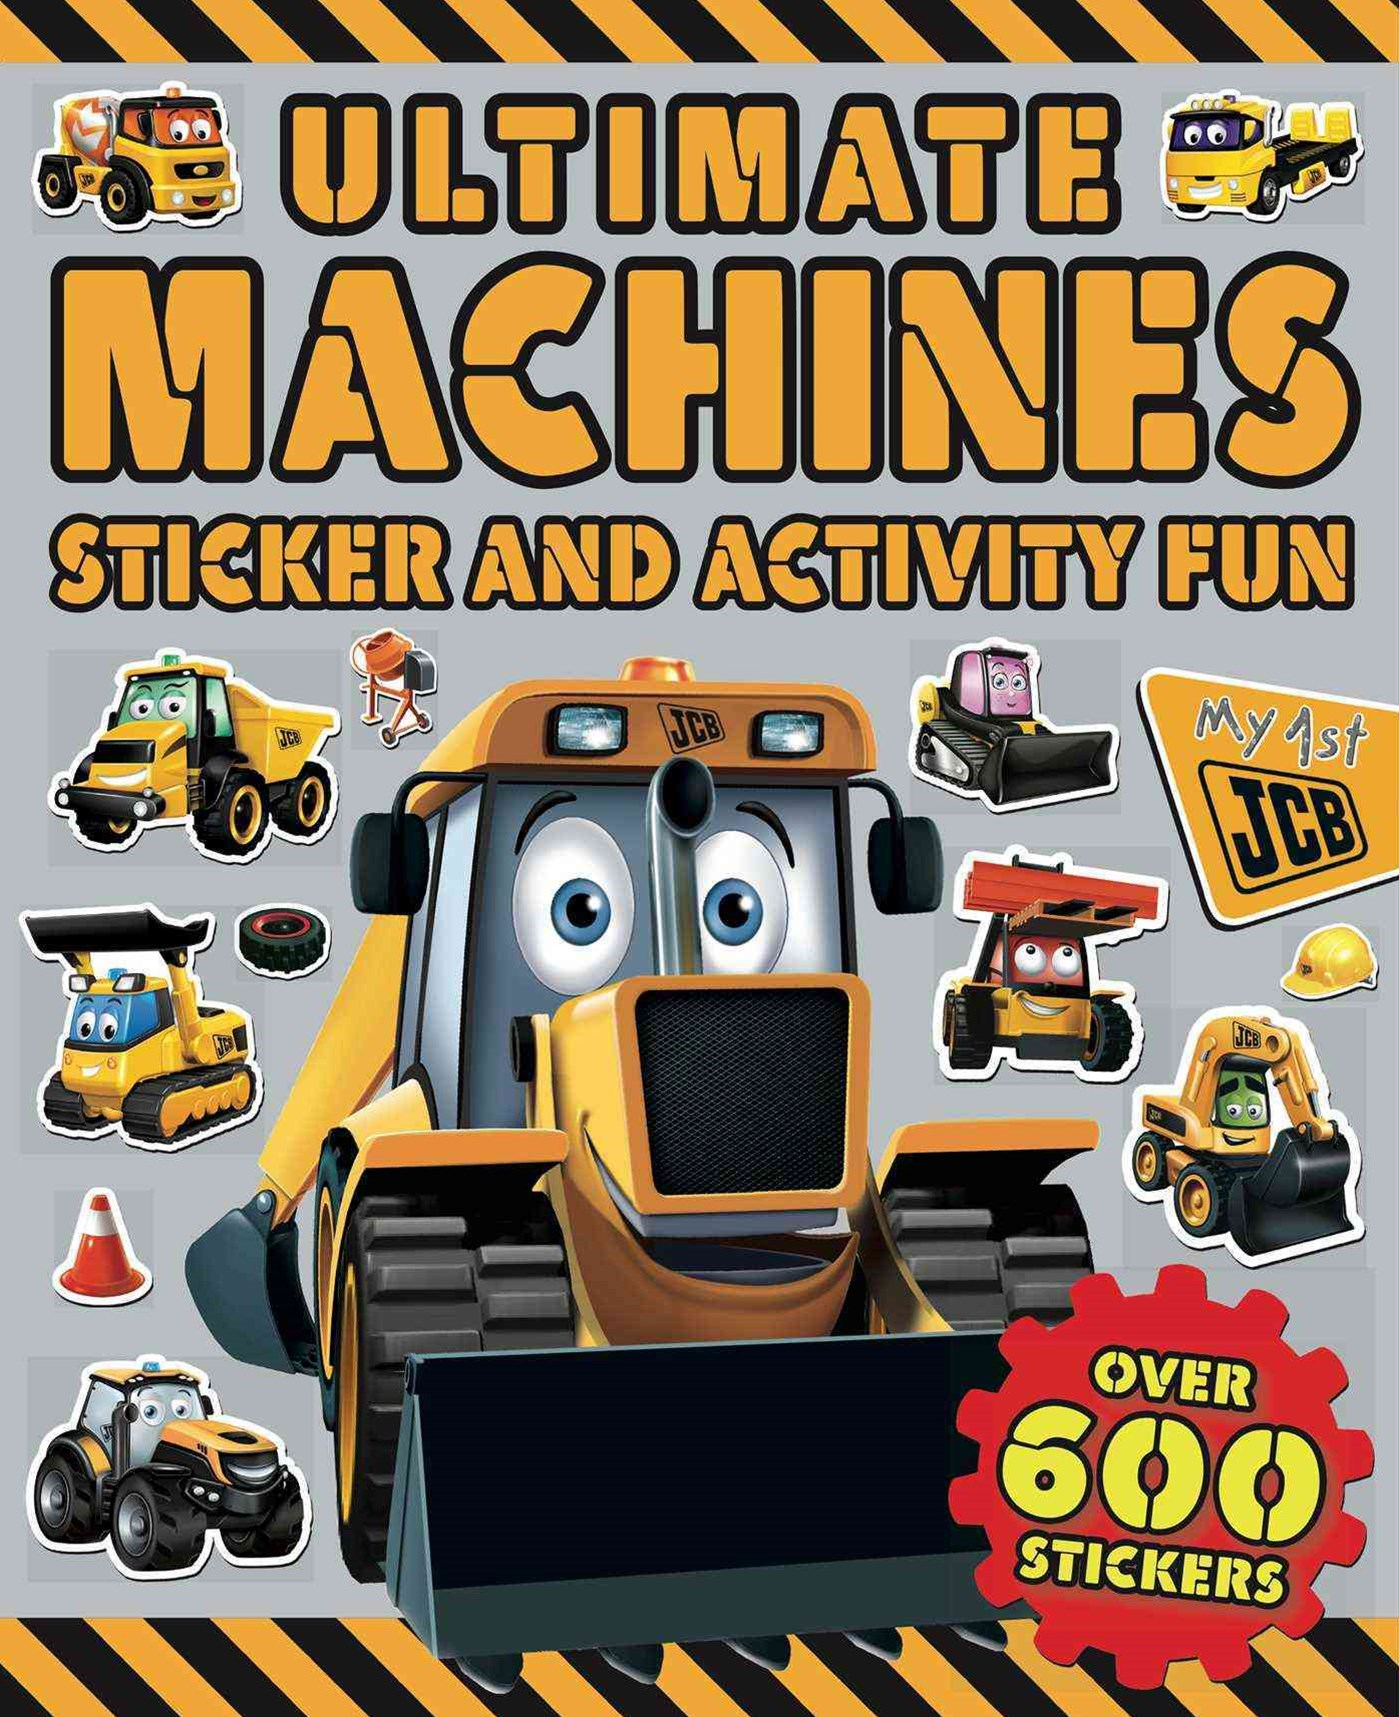 Ultimate Machines Sticker and Activity Fun